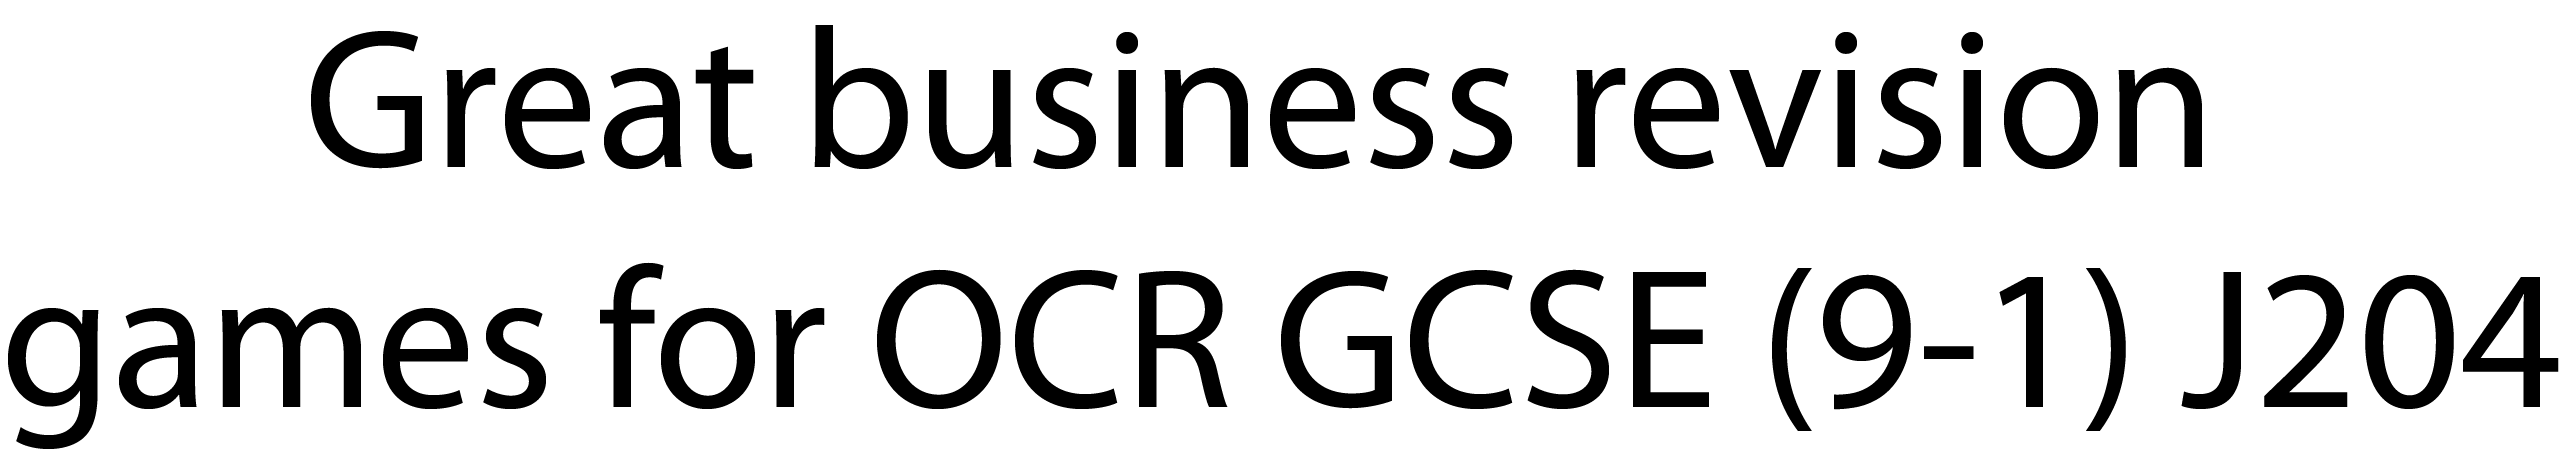 Great business revision games for OCR GCSE (9-1) J204